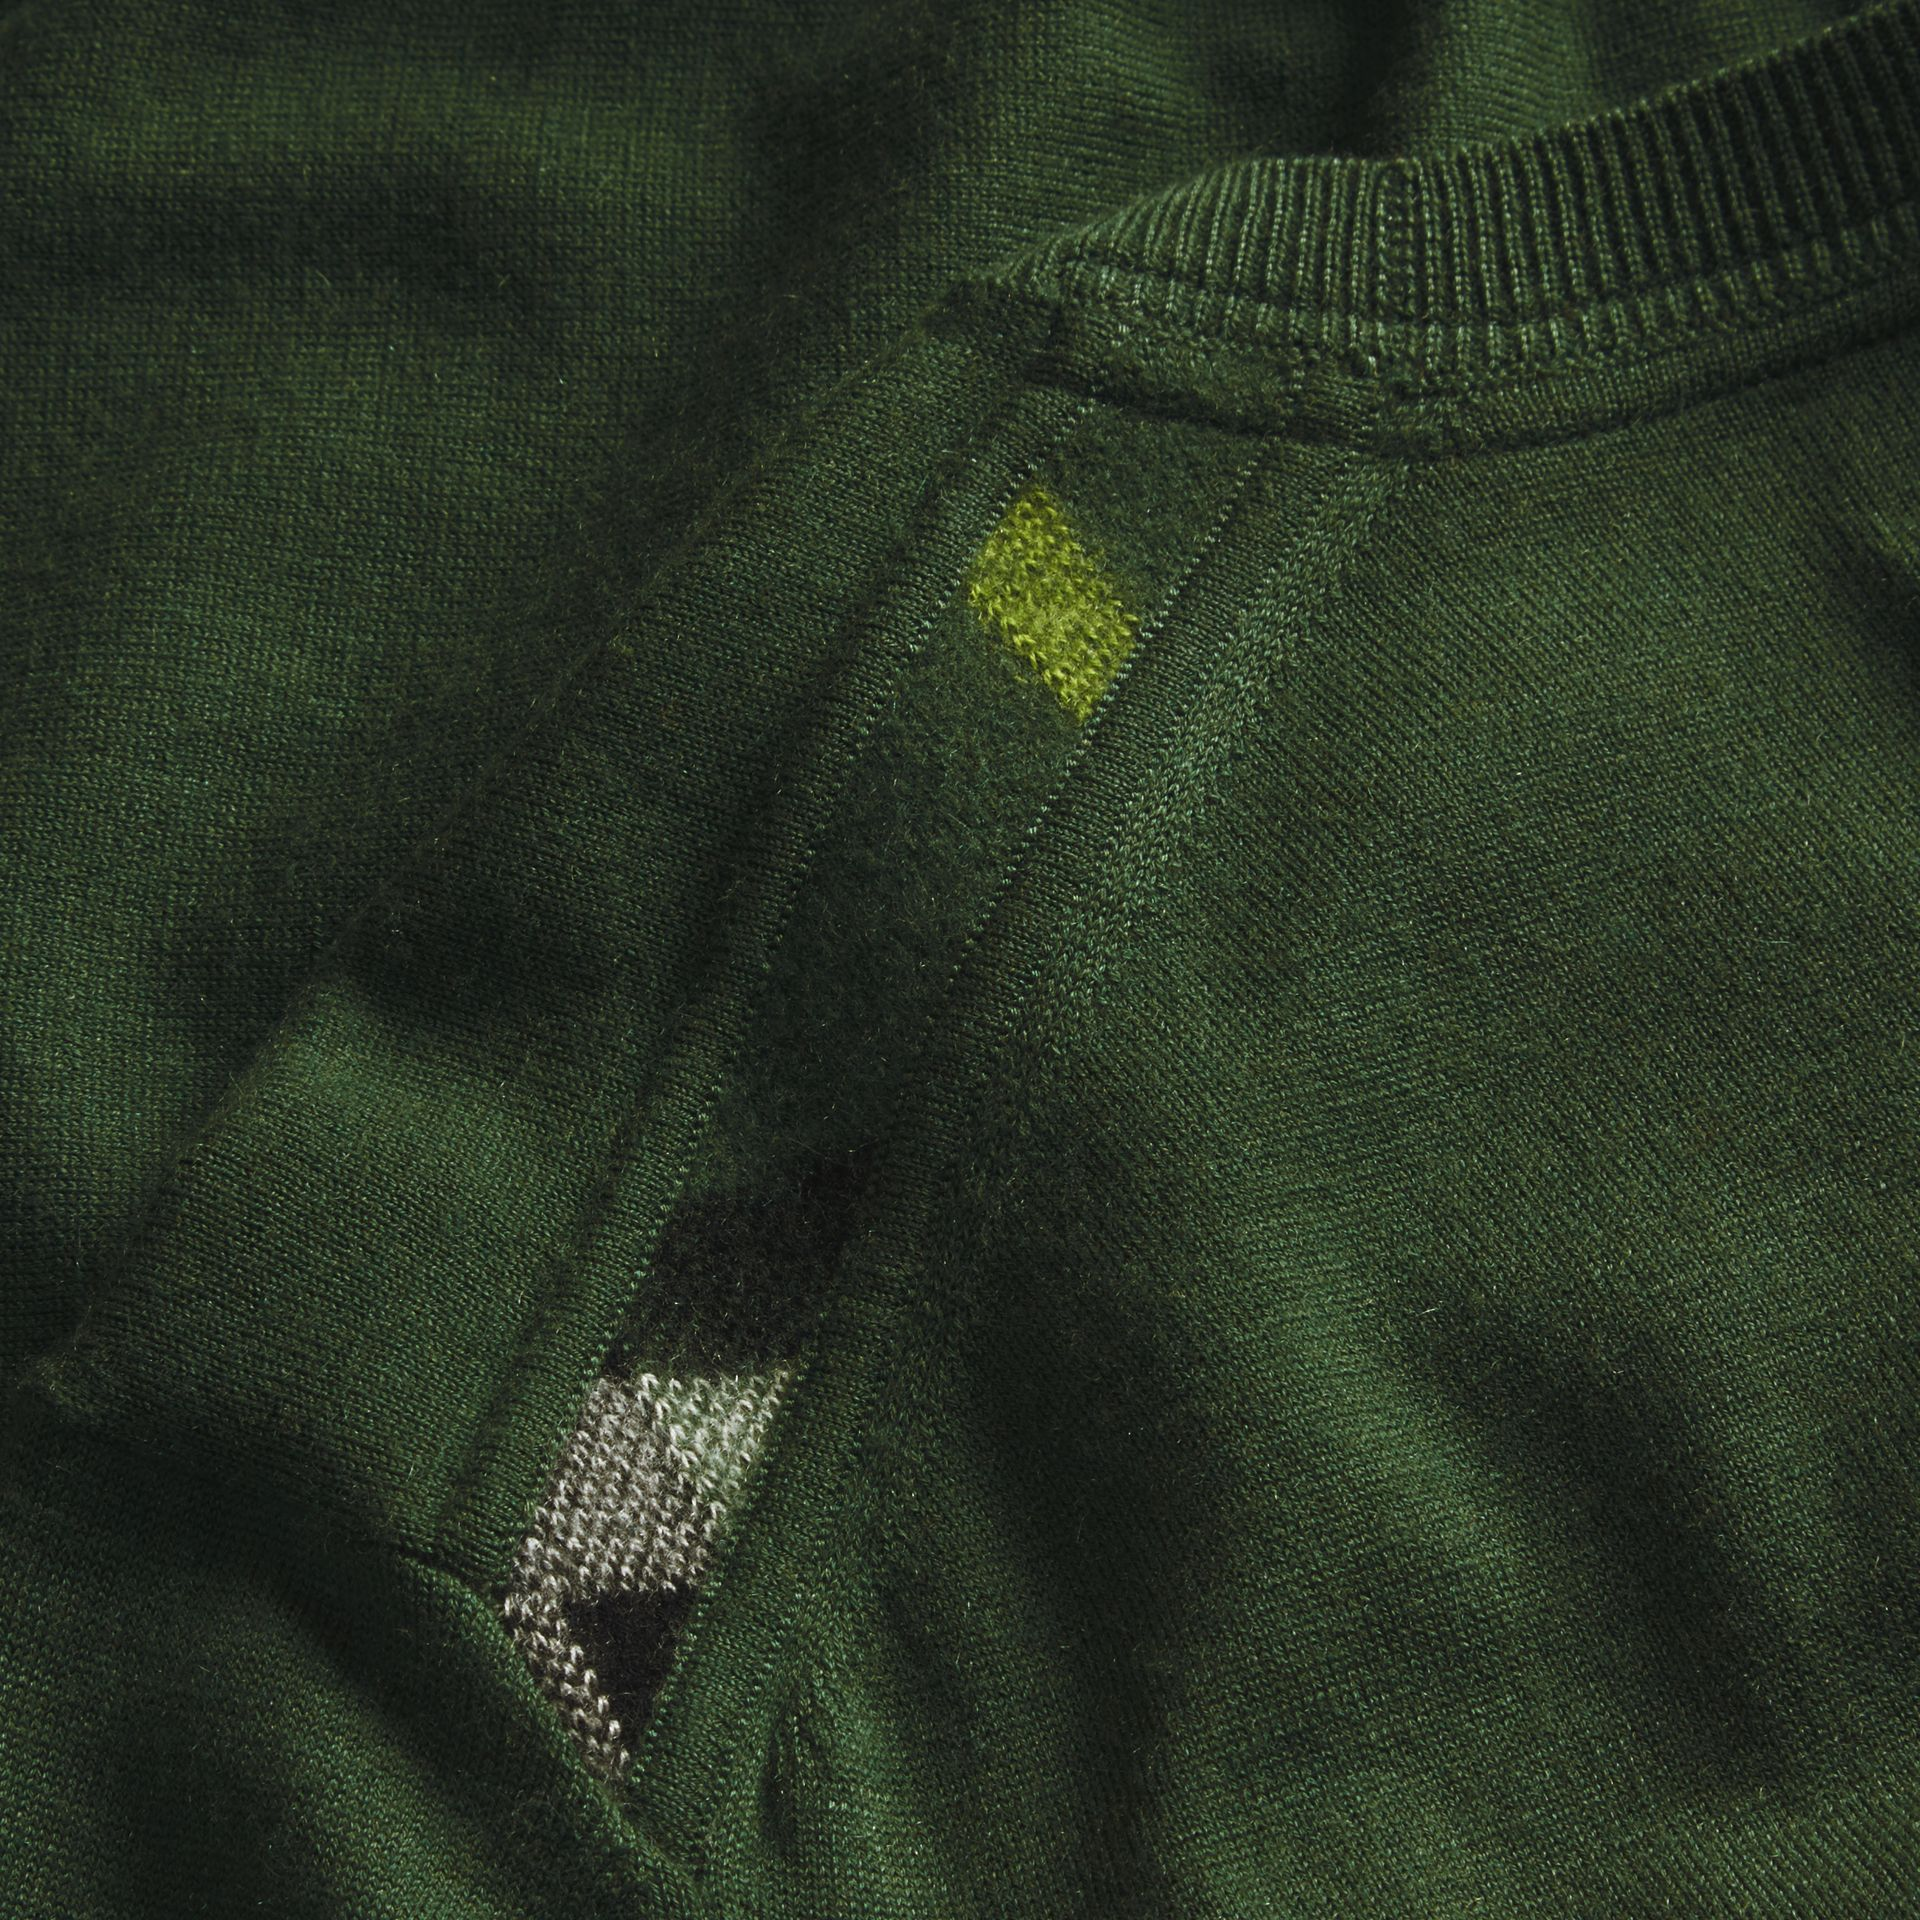 Olive green Lightweight Crew Neck Cashmere Sweater with Check Trim Olive Green - gallery image 2